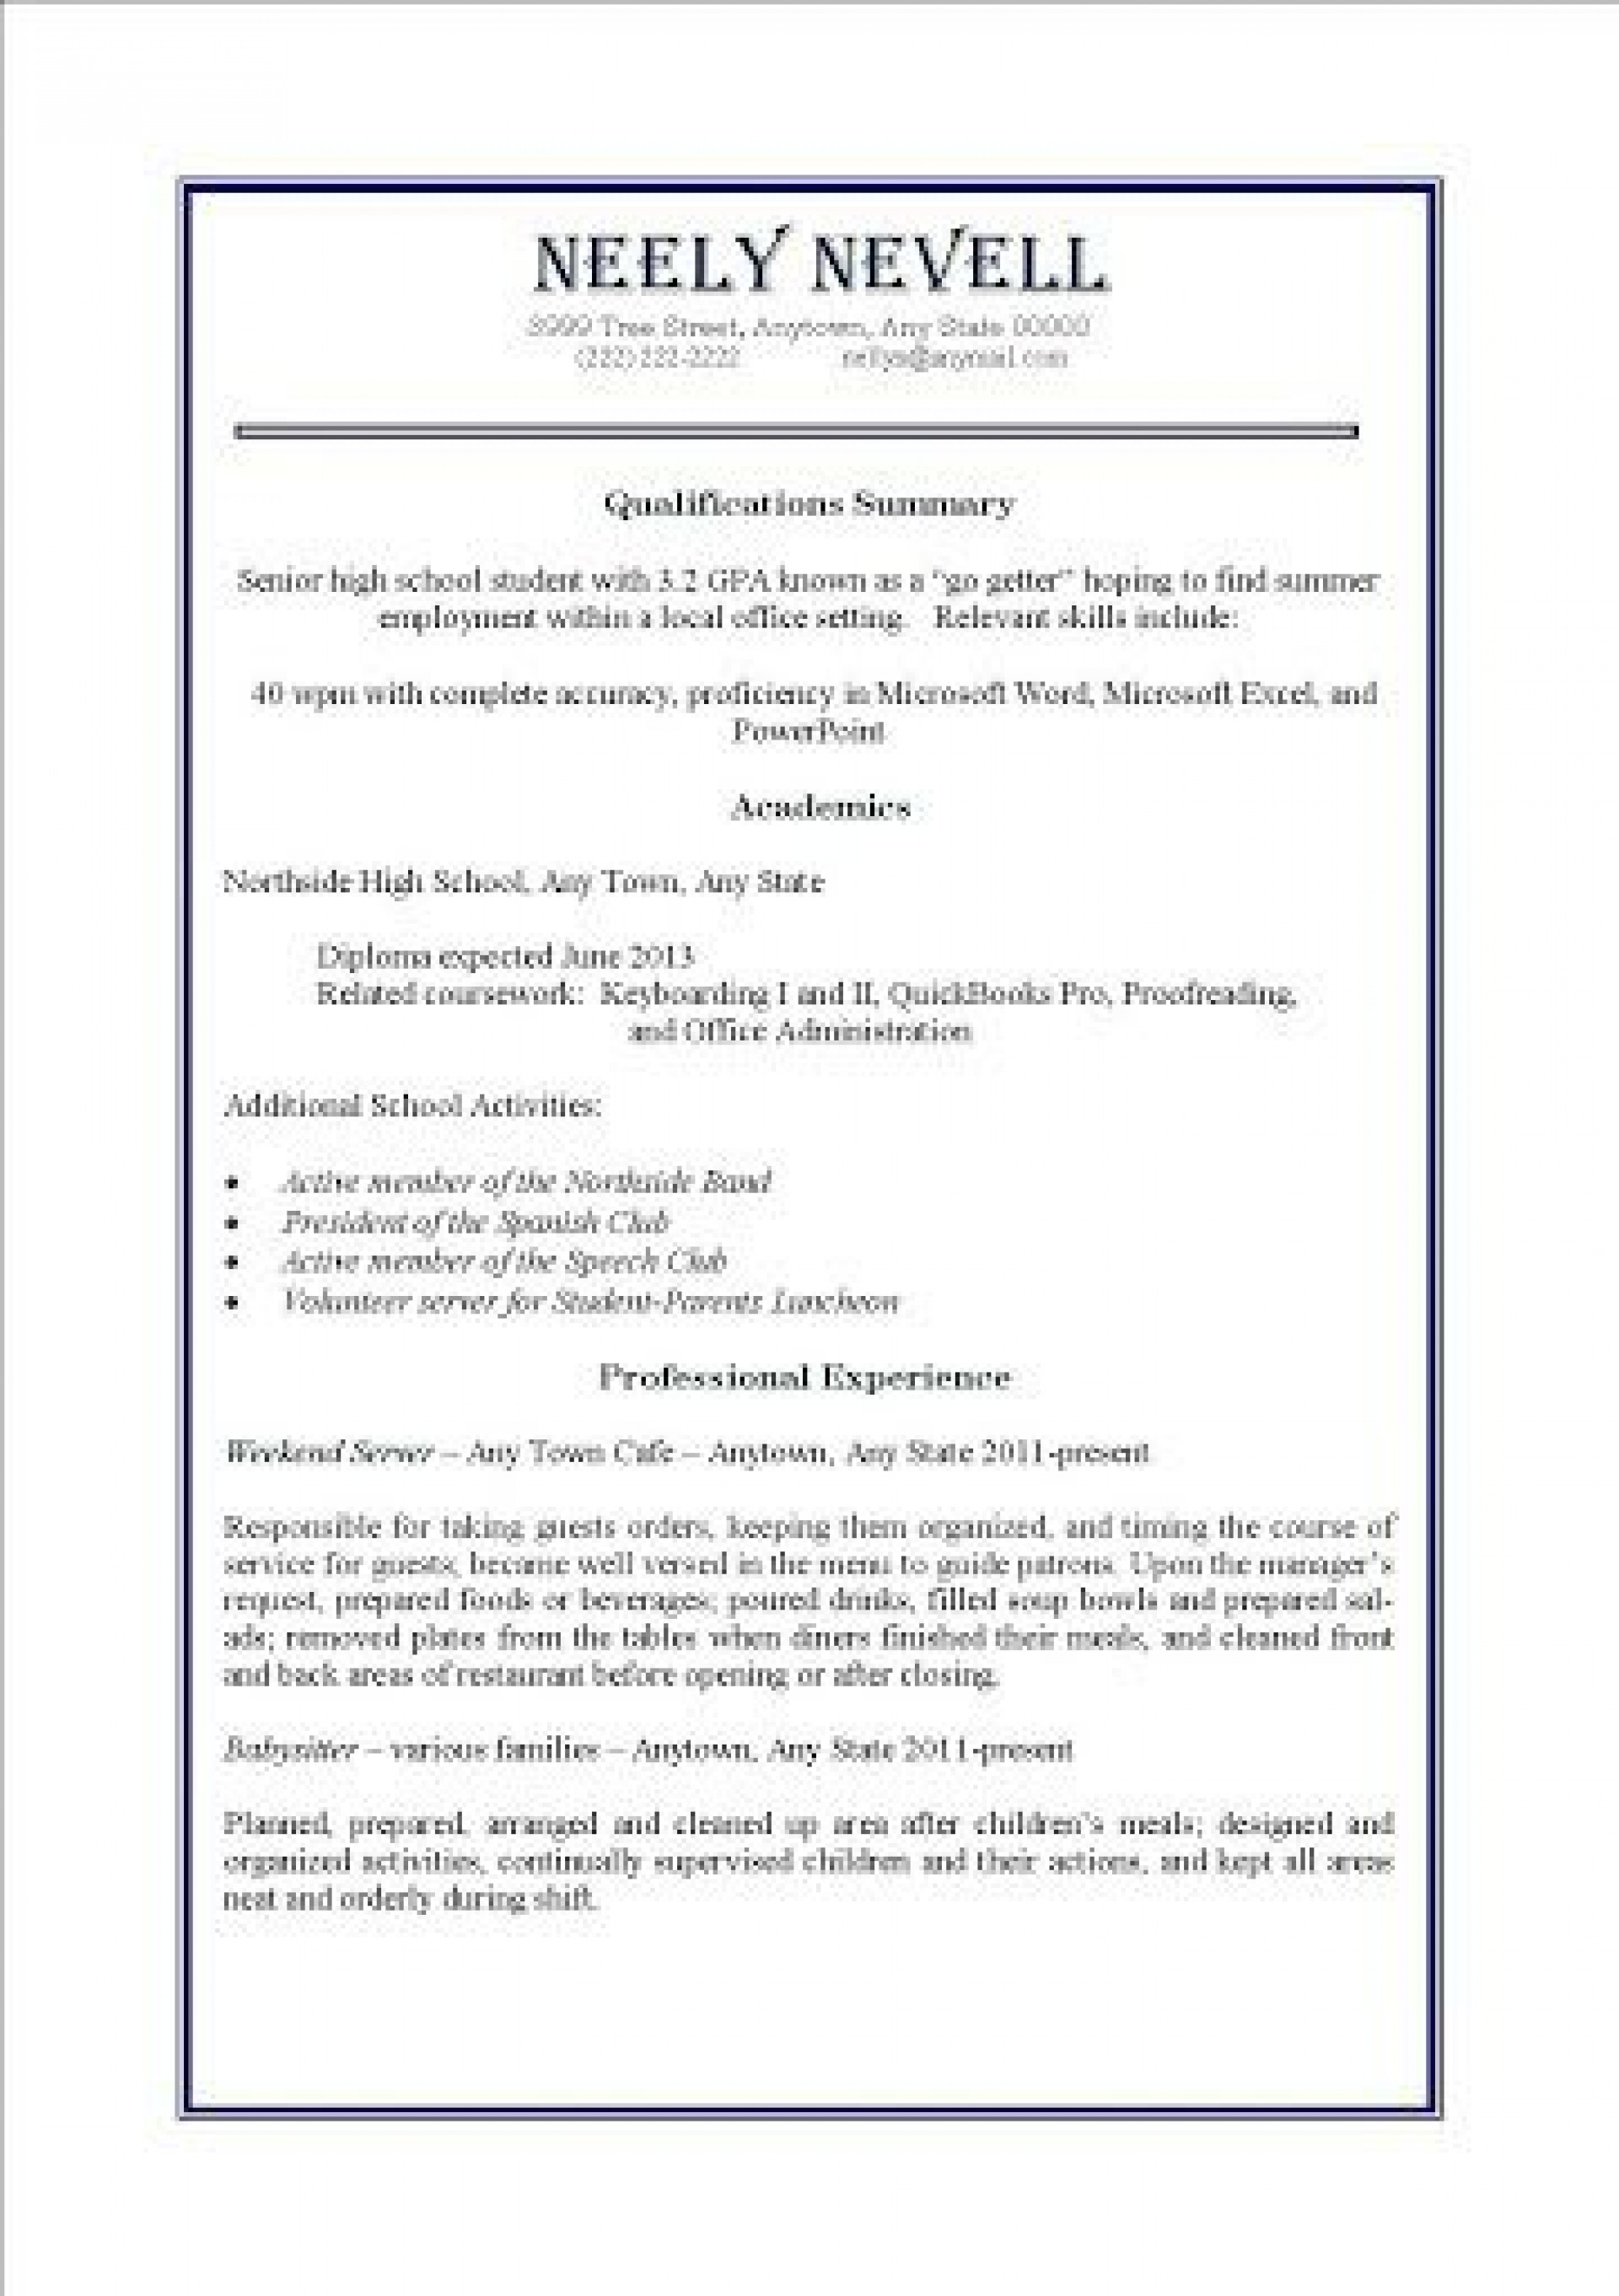 000 Awesome Resume Template For Teen High Definition  Teenager First Job Australia1920